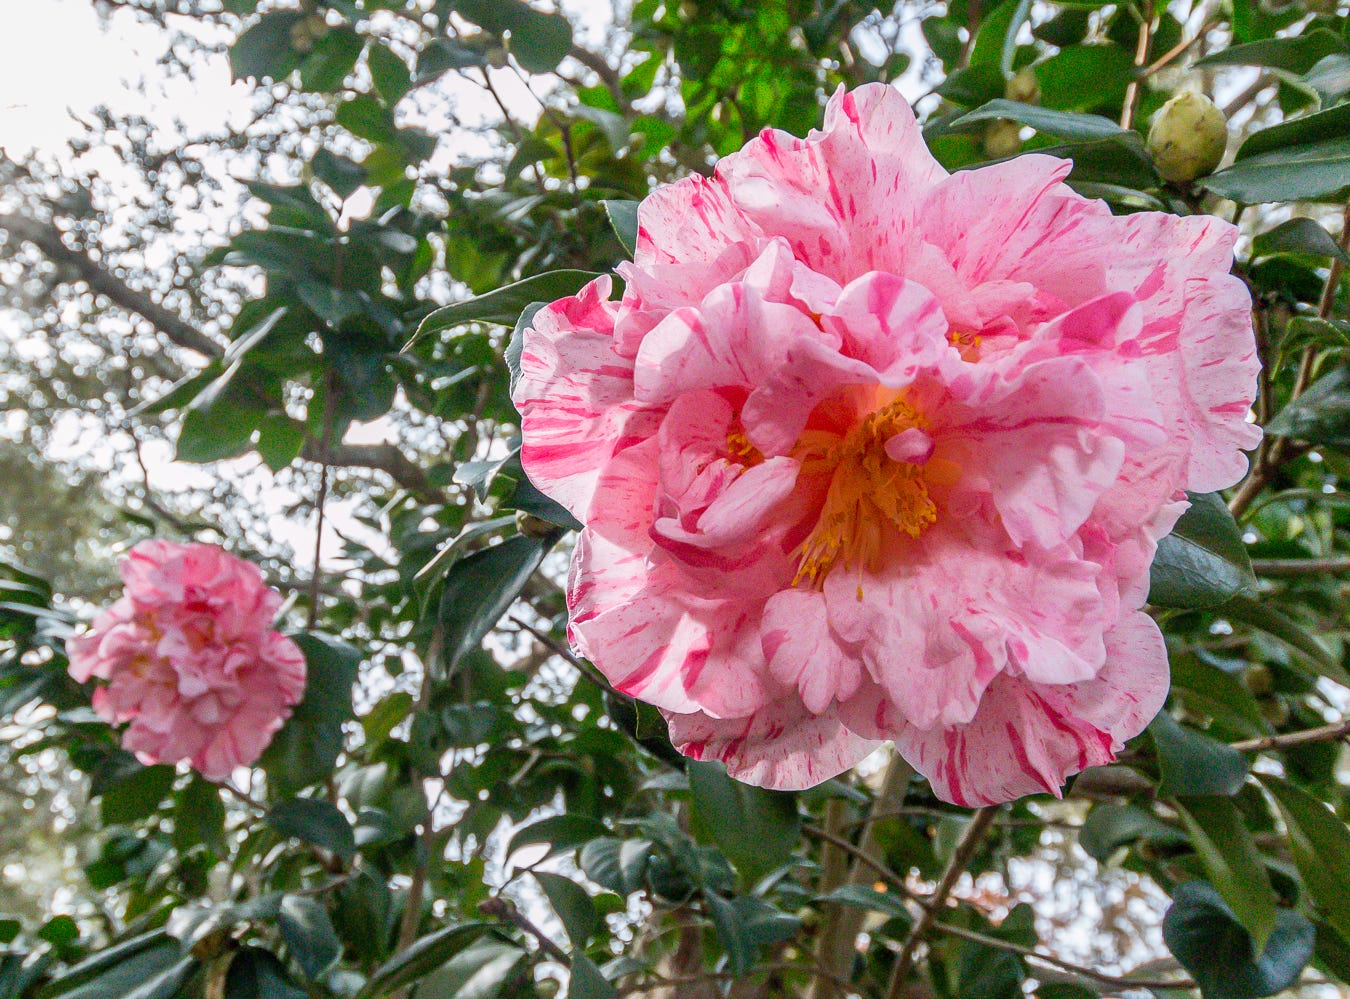 Blooming Lauran Tudor camellias are on display in the University of West Florida's Camellia Garden on Wednesday, November 28, 2018. The garden is located just east of Building 41 for Pyschology and Behavioral Sciences.